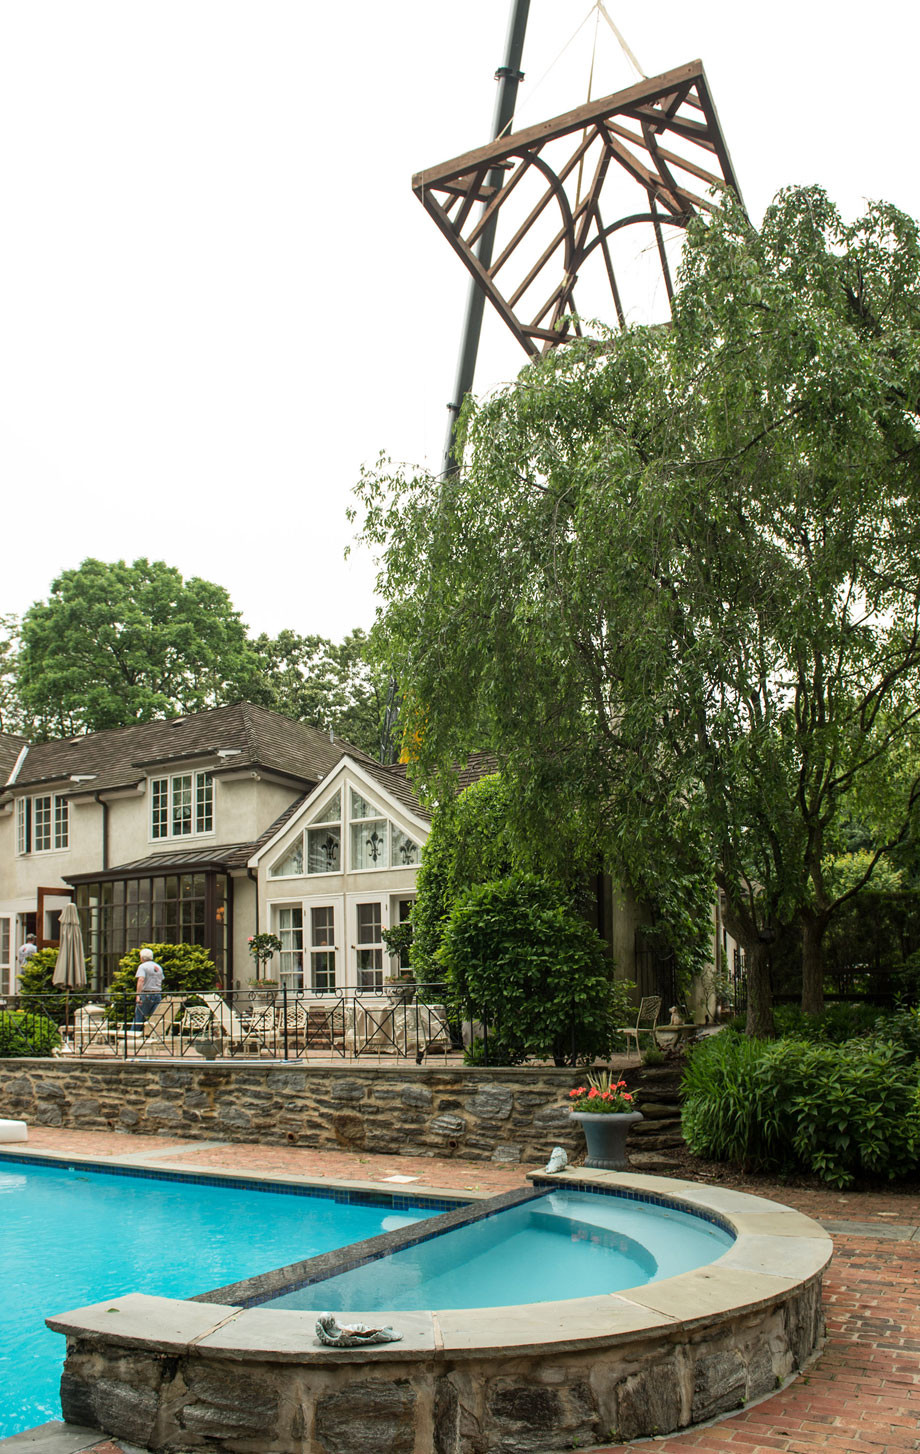 8-HLTF-Pool-House-Gladwyne-118